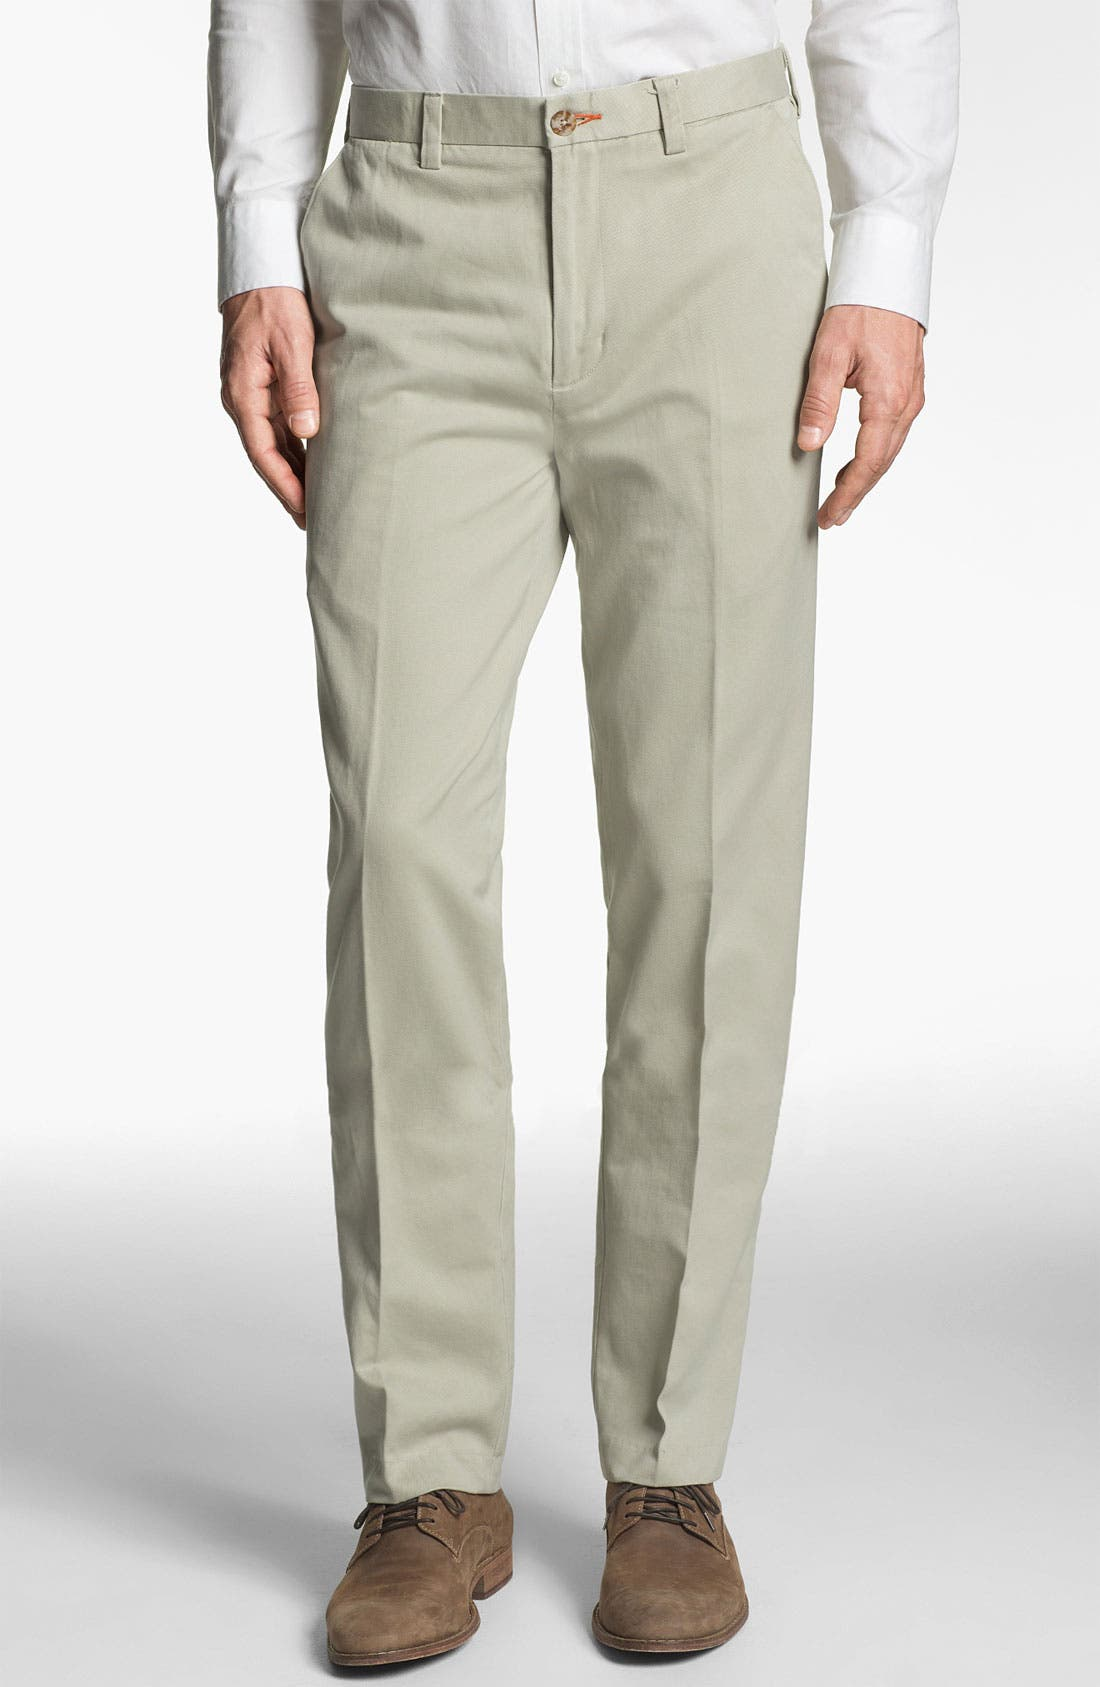 Alternate Image 1 Selected - ROAD 'Lux' Flat Front Twill Trousers